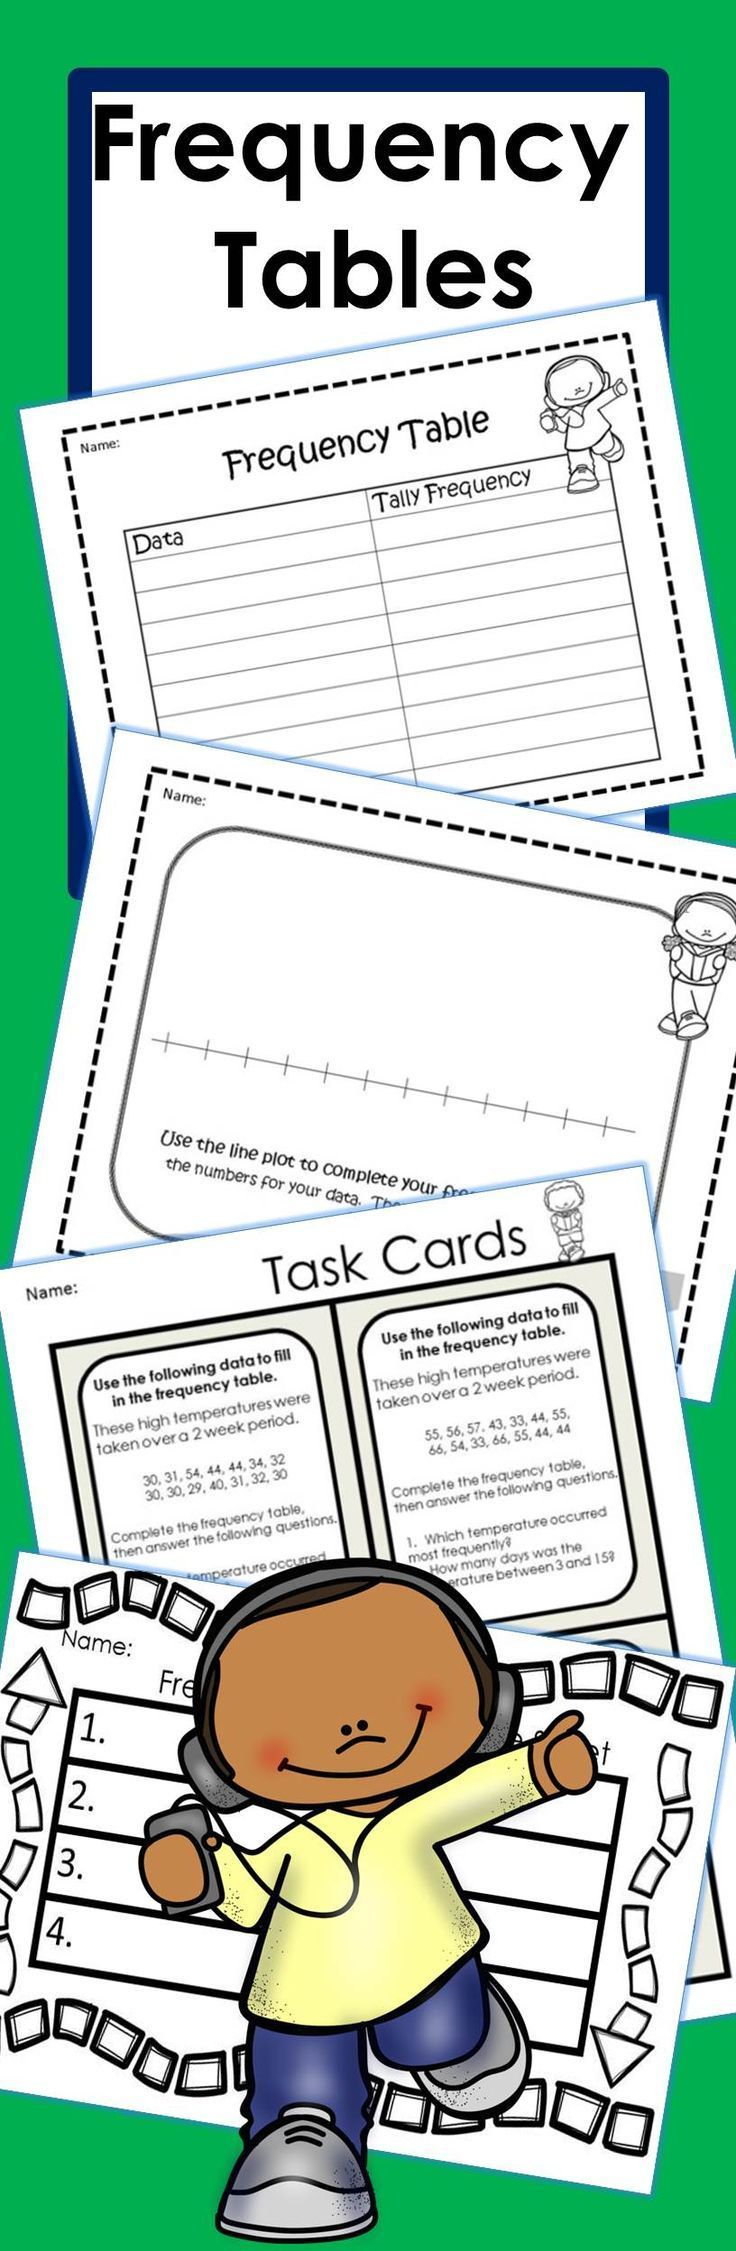 I needed frequency tables for my students to practice and use applied skills for upcoming state testing!! So, I created these to use in my 3rd grade class!  You can print these as worksheets to plot and graph or you might print the data cards as task cards. I laminated all these to use with dry erase markers for file folder game!! I also have used the frequency tables as worksheets!